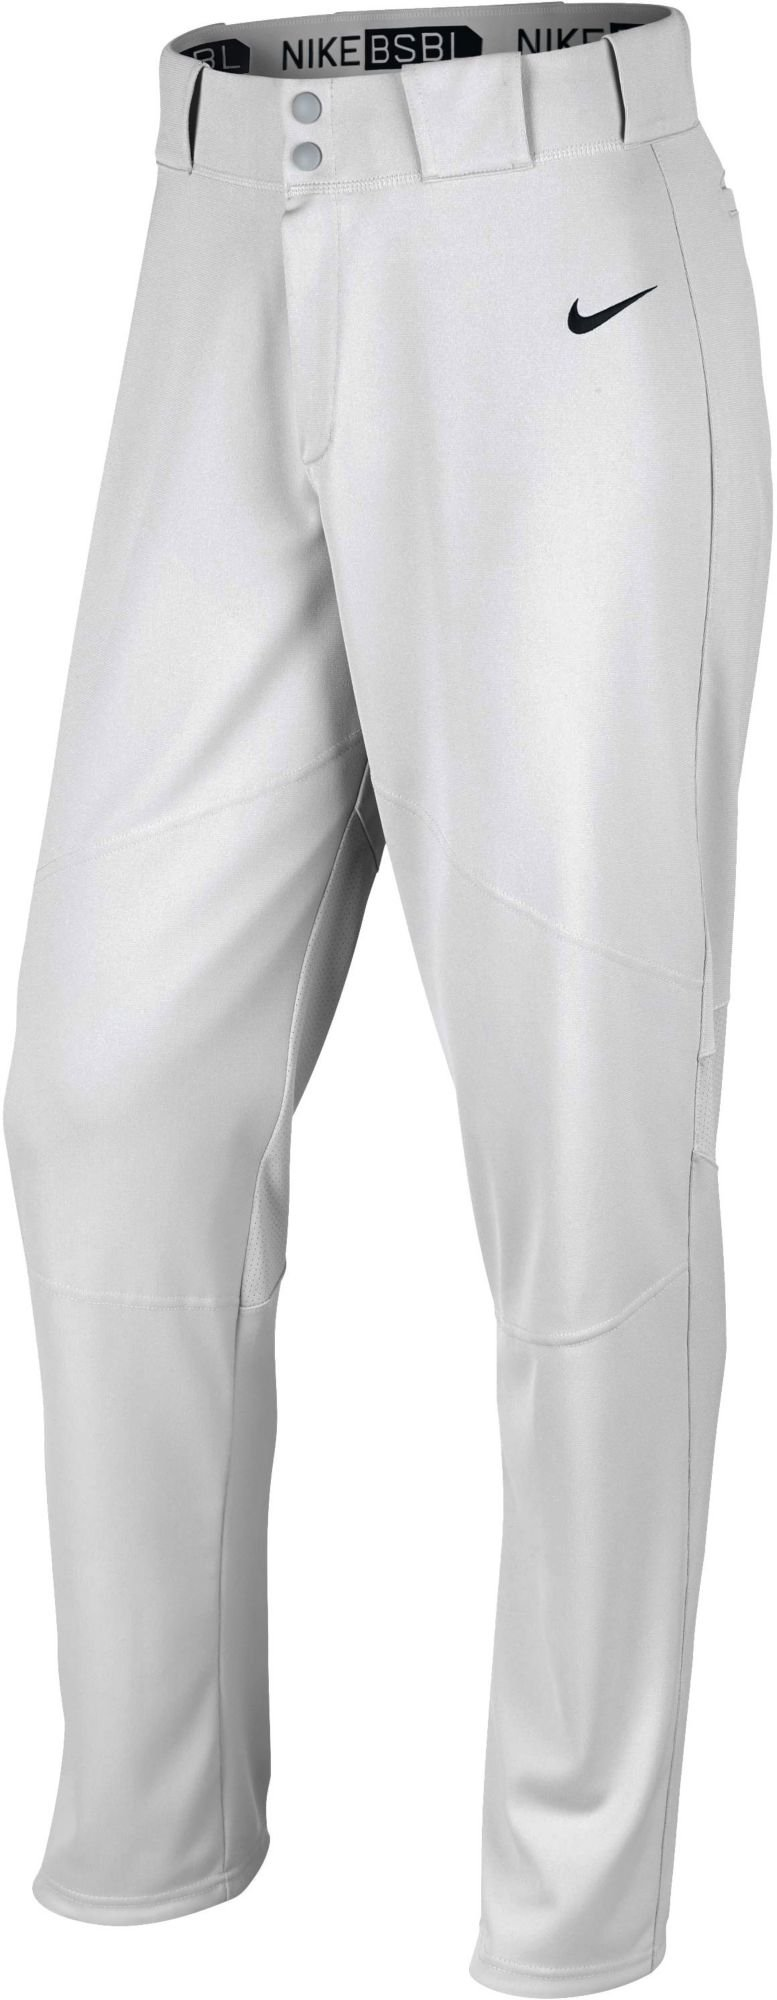 Nike Boys' Pro Vapor Baseball Pants (XS, White) by Nike